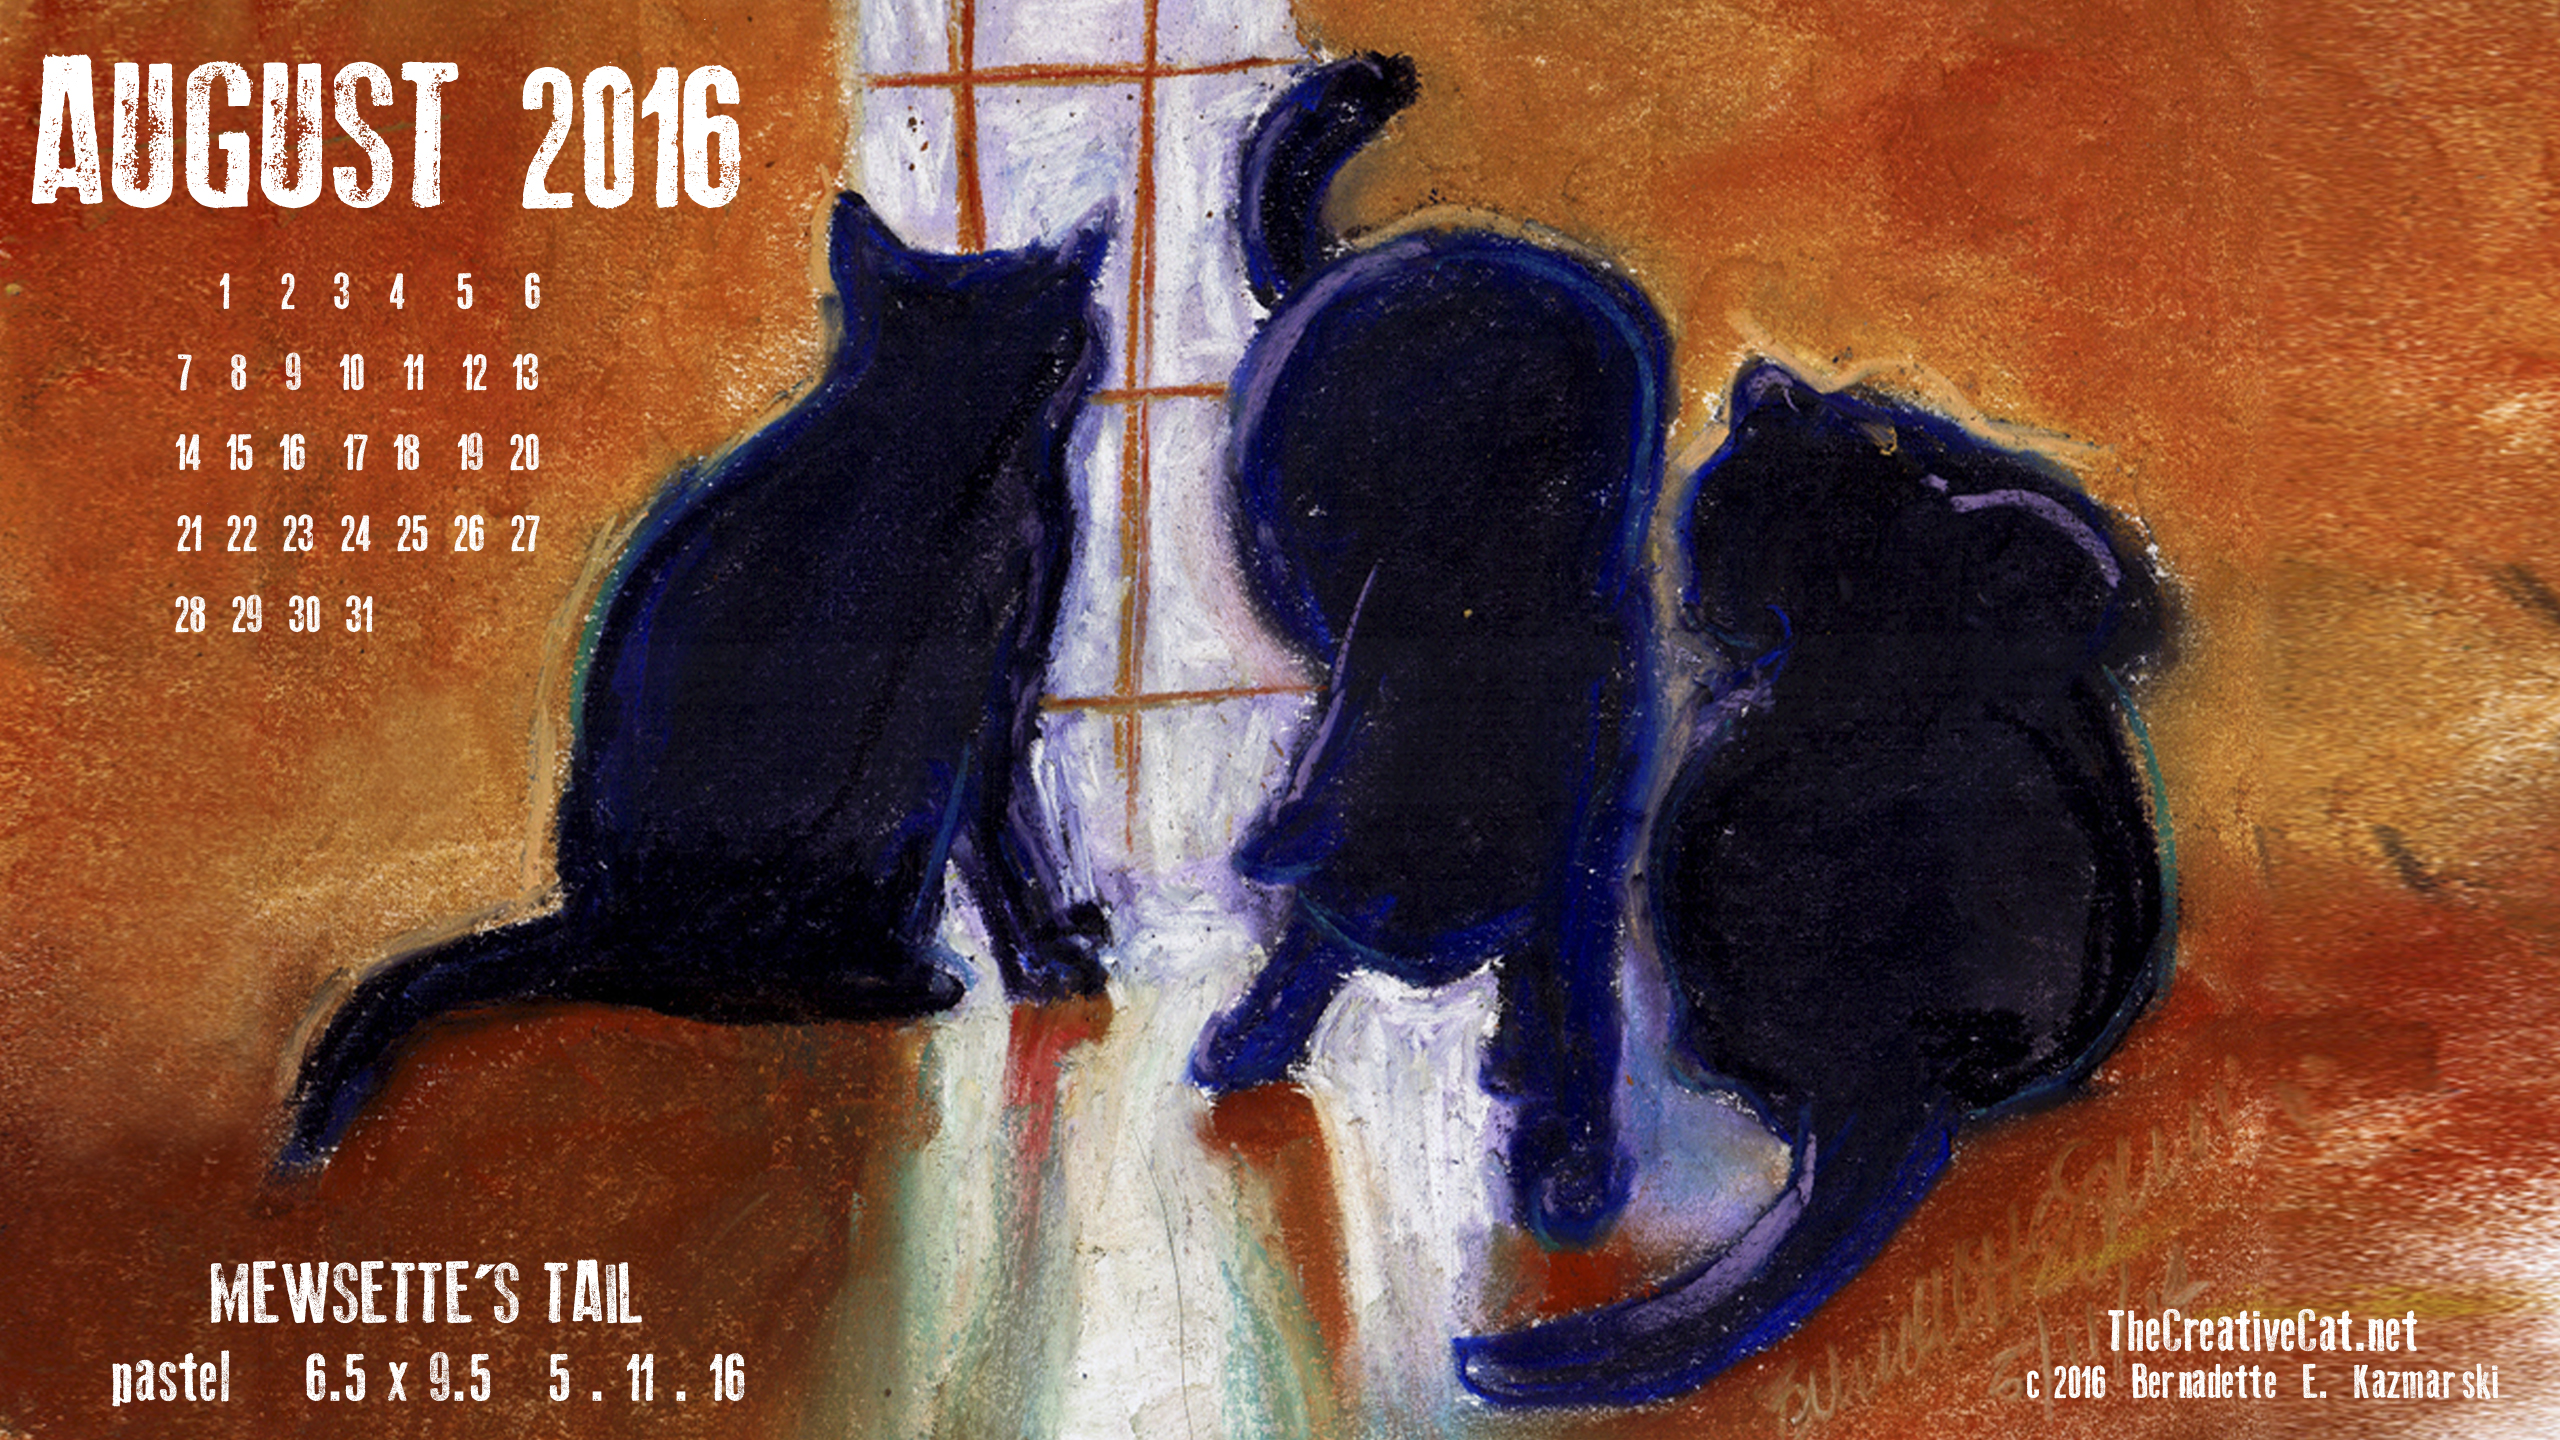 """Mewsette' Tail' desktop calendar 2560 x 1440 for HD and wide screens."